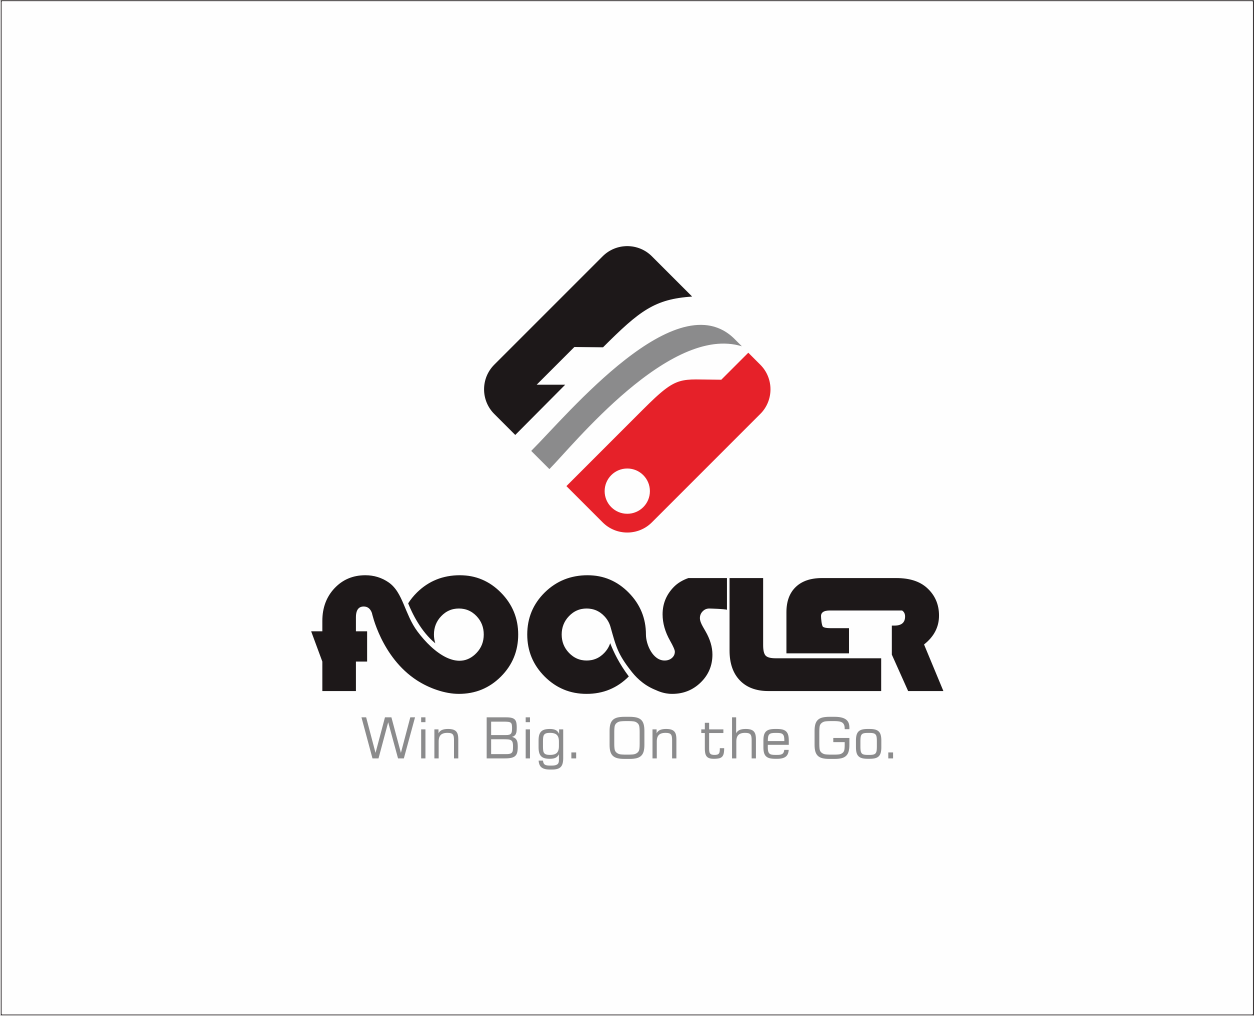 Logo Design by Armada Jamaluddin - Entry No. 83 in the Logo Design Contest Foosler Logo Design.